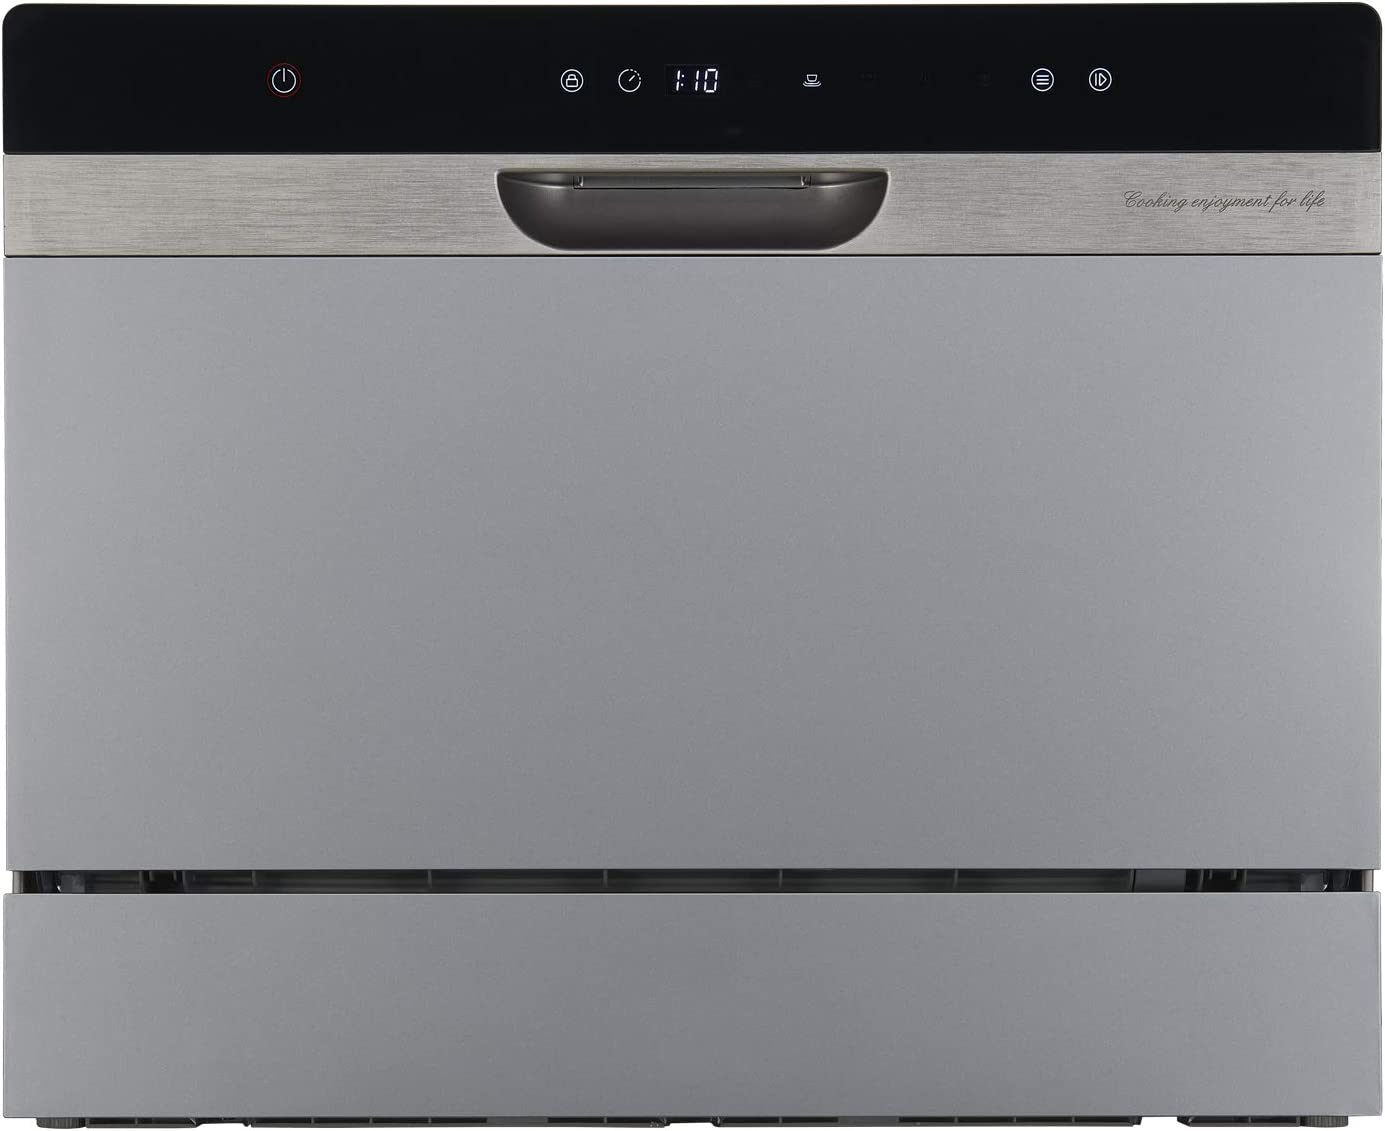 Compact Portable Countertop Dishwasher With Stainless Steel Interior and 6 Place Settings, LED Display, Energy Star, Rack Silverware Basket for Apartment Office And Home Kitchen